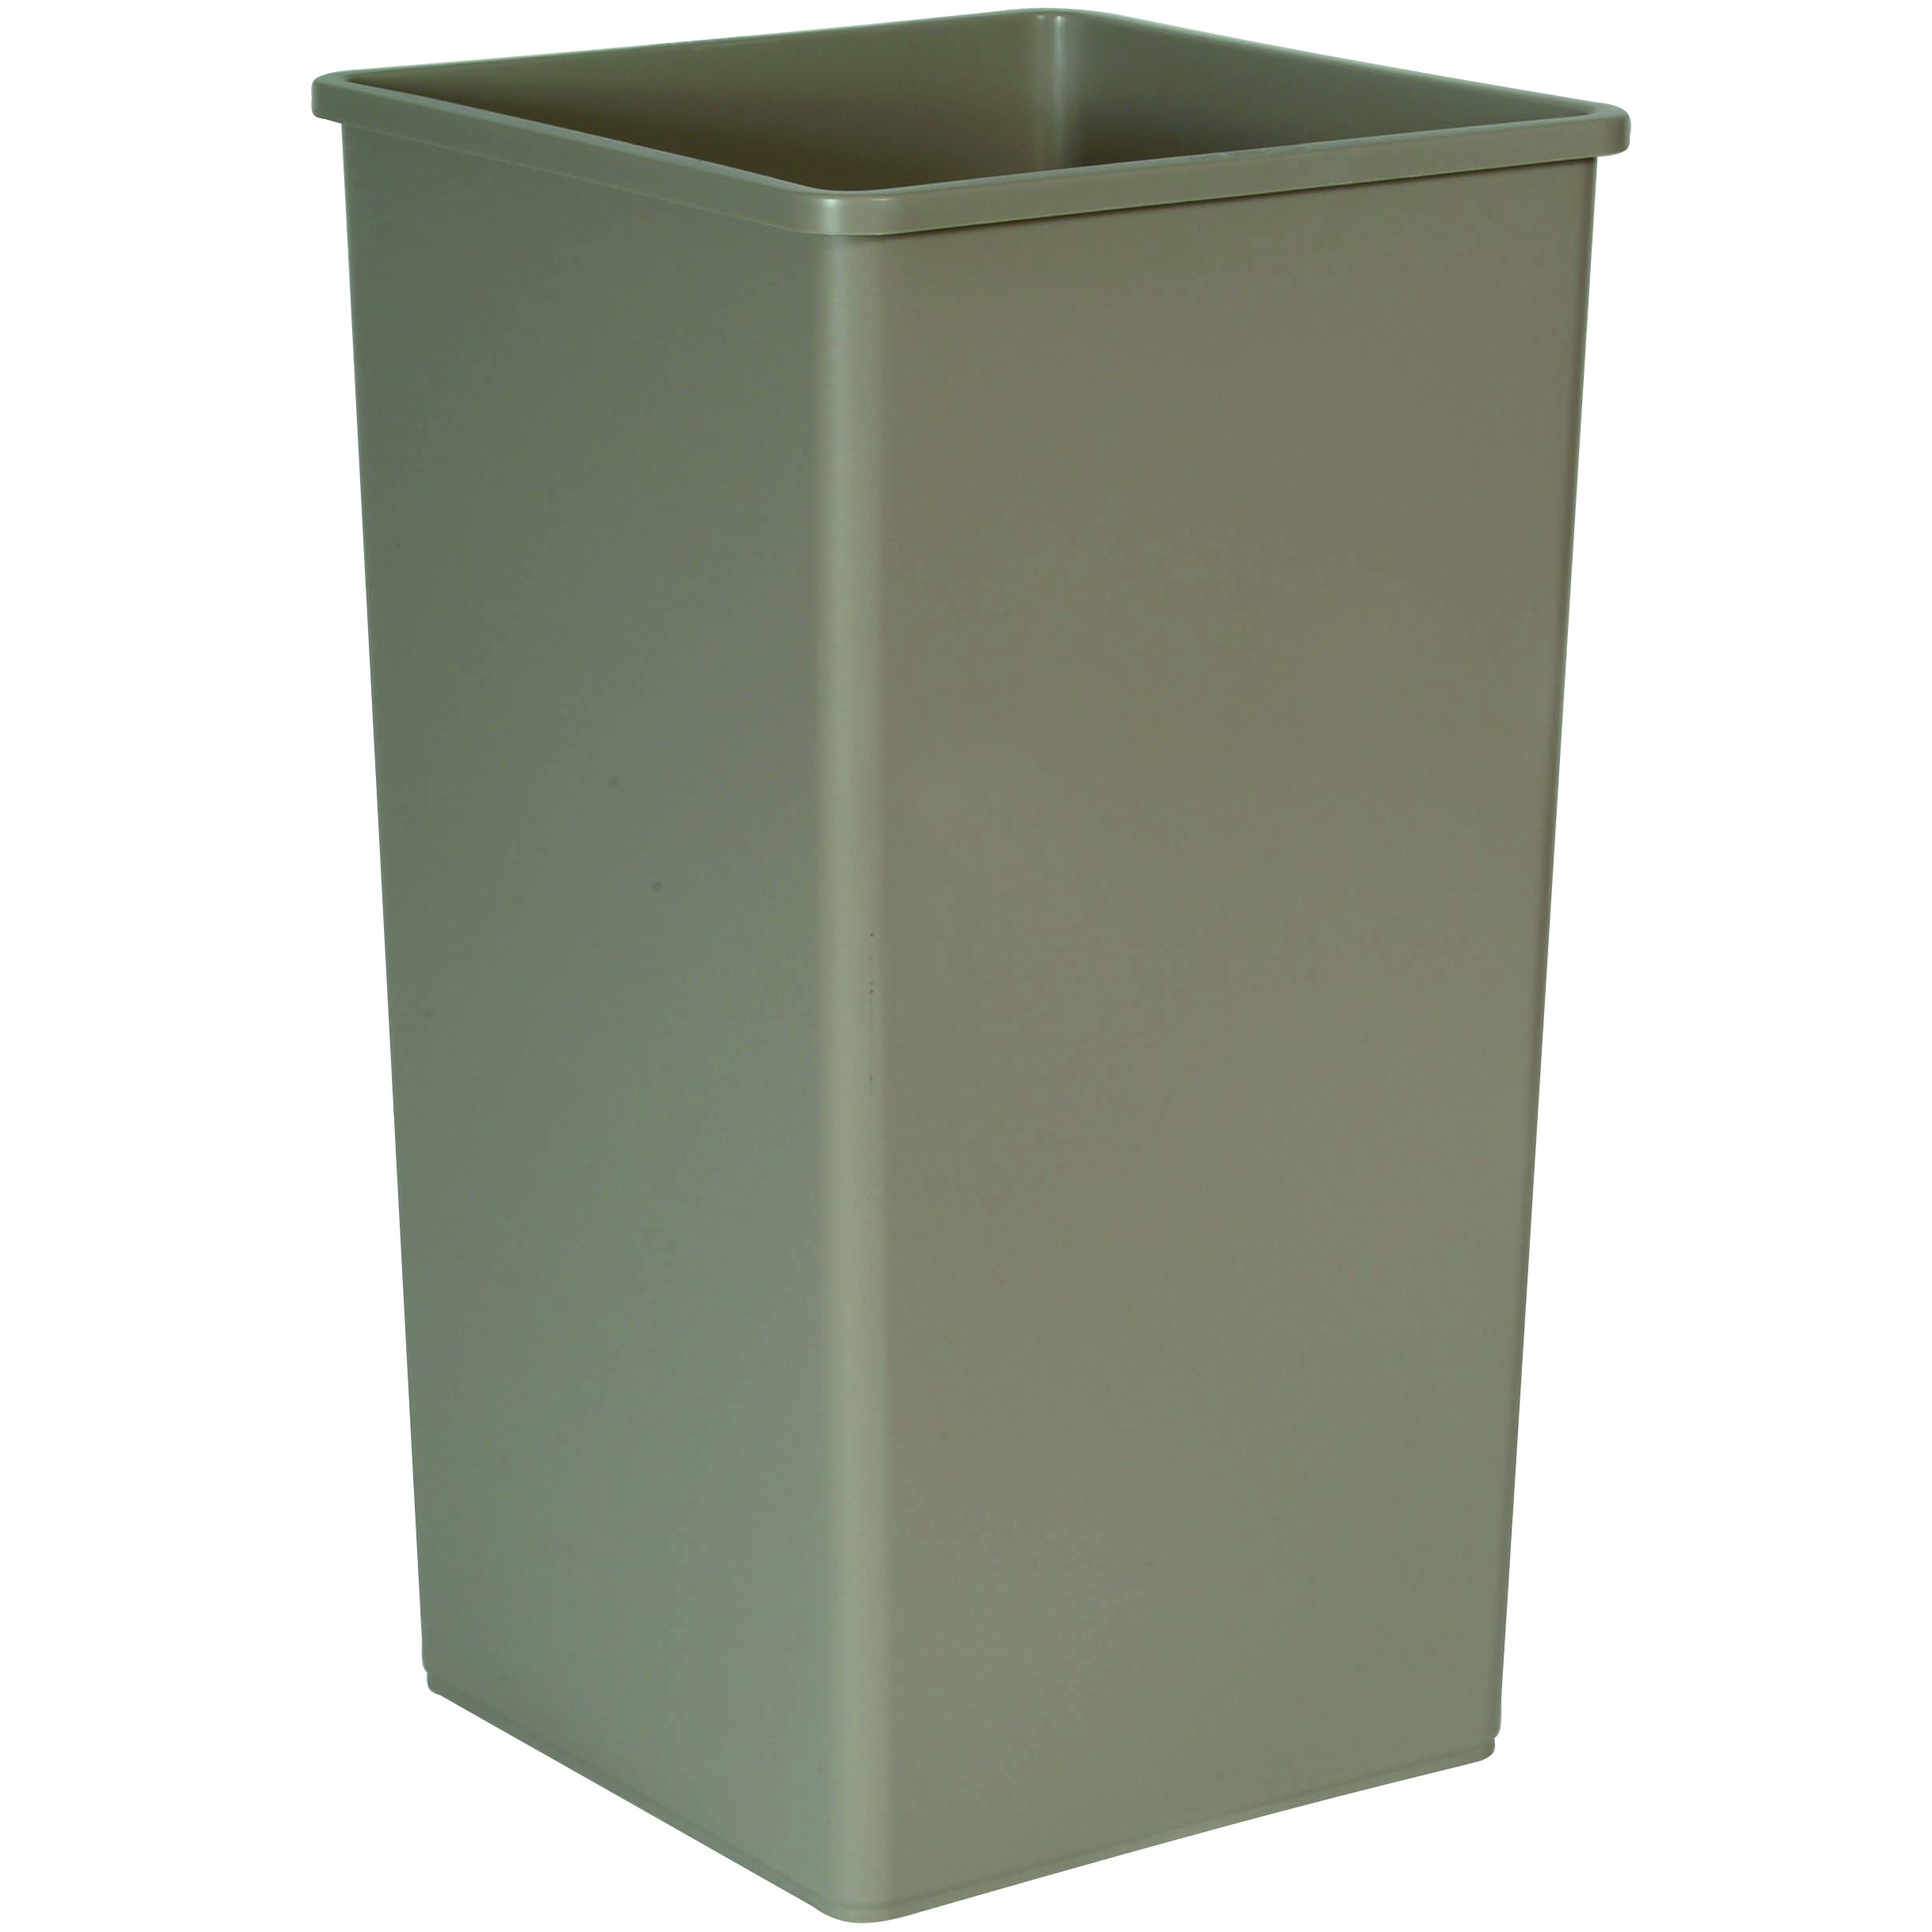 Rubbermaid Untouchable Square Recycling Bin Trash Can